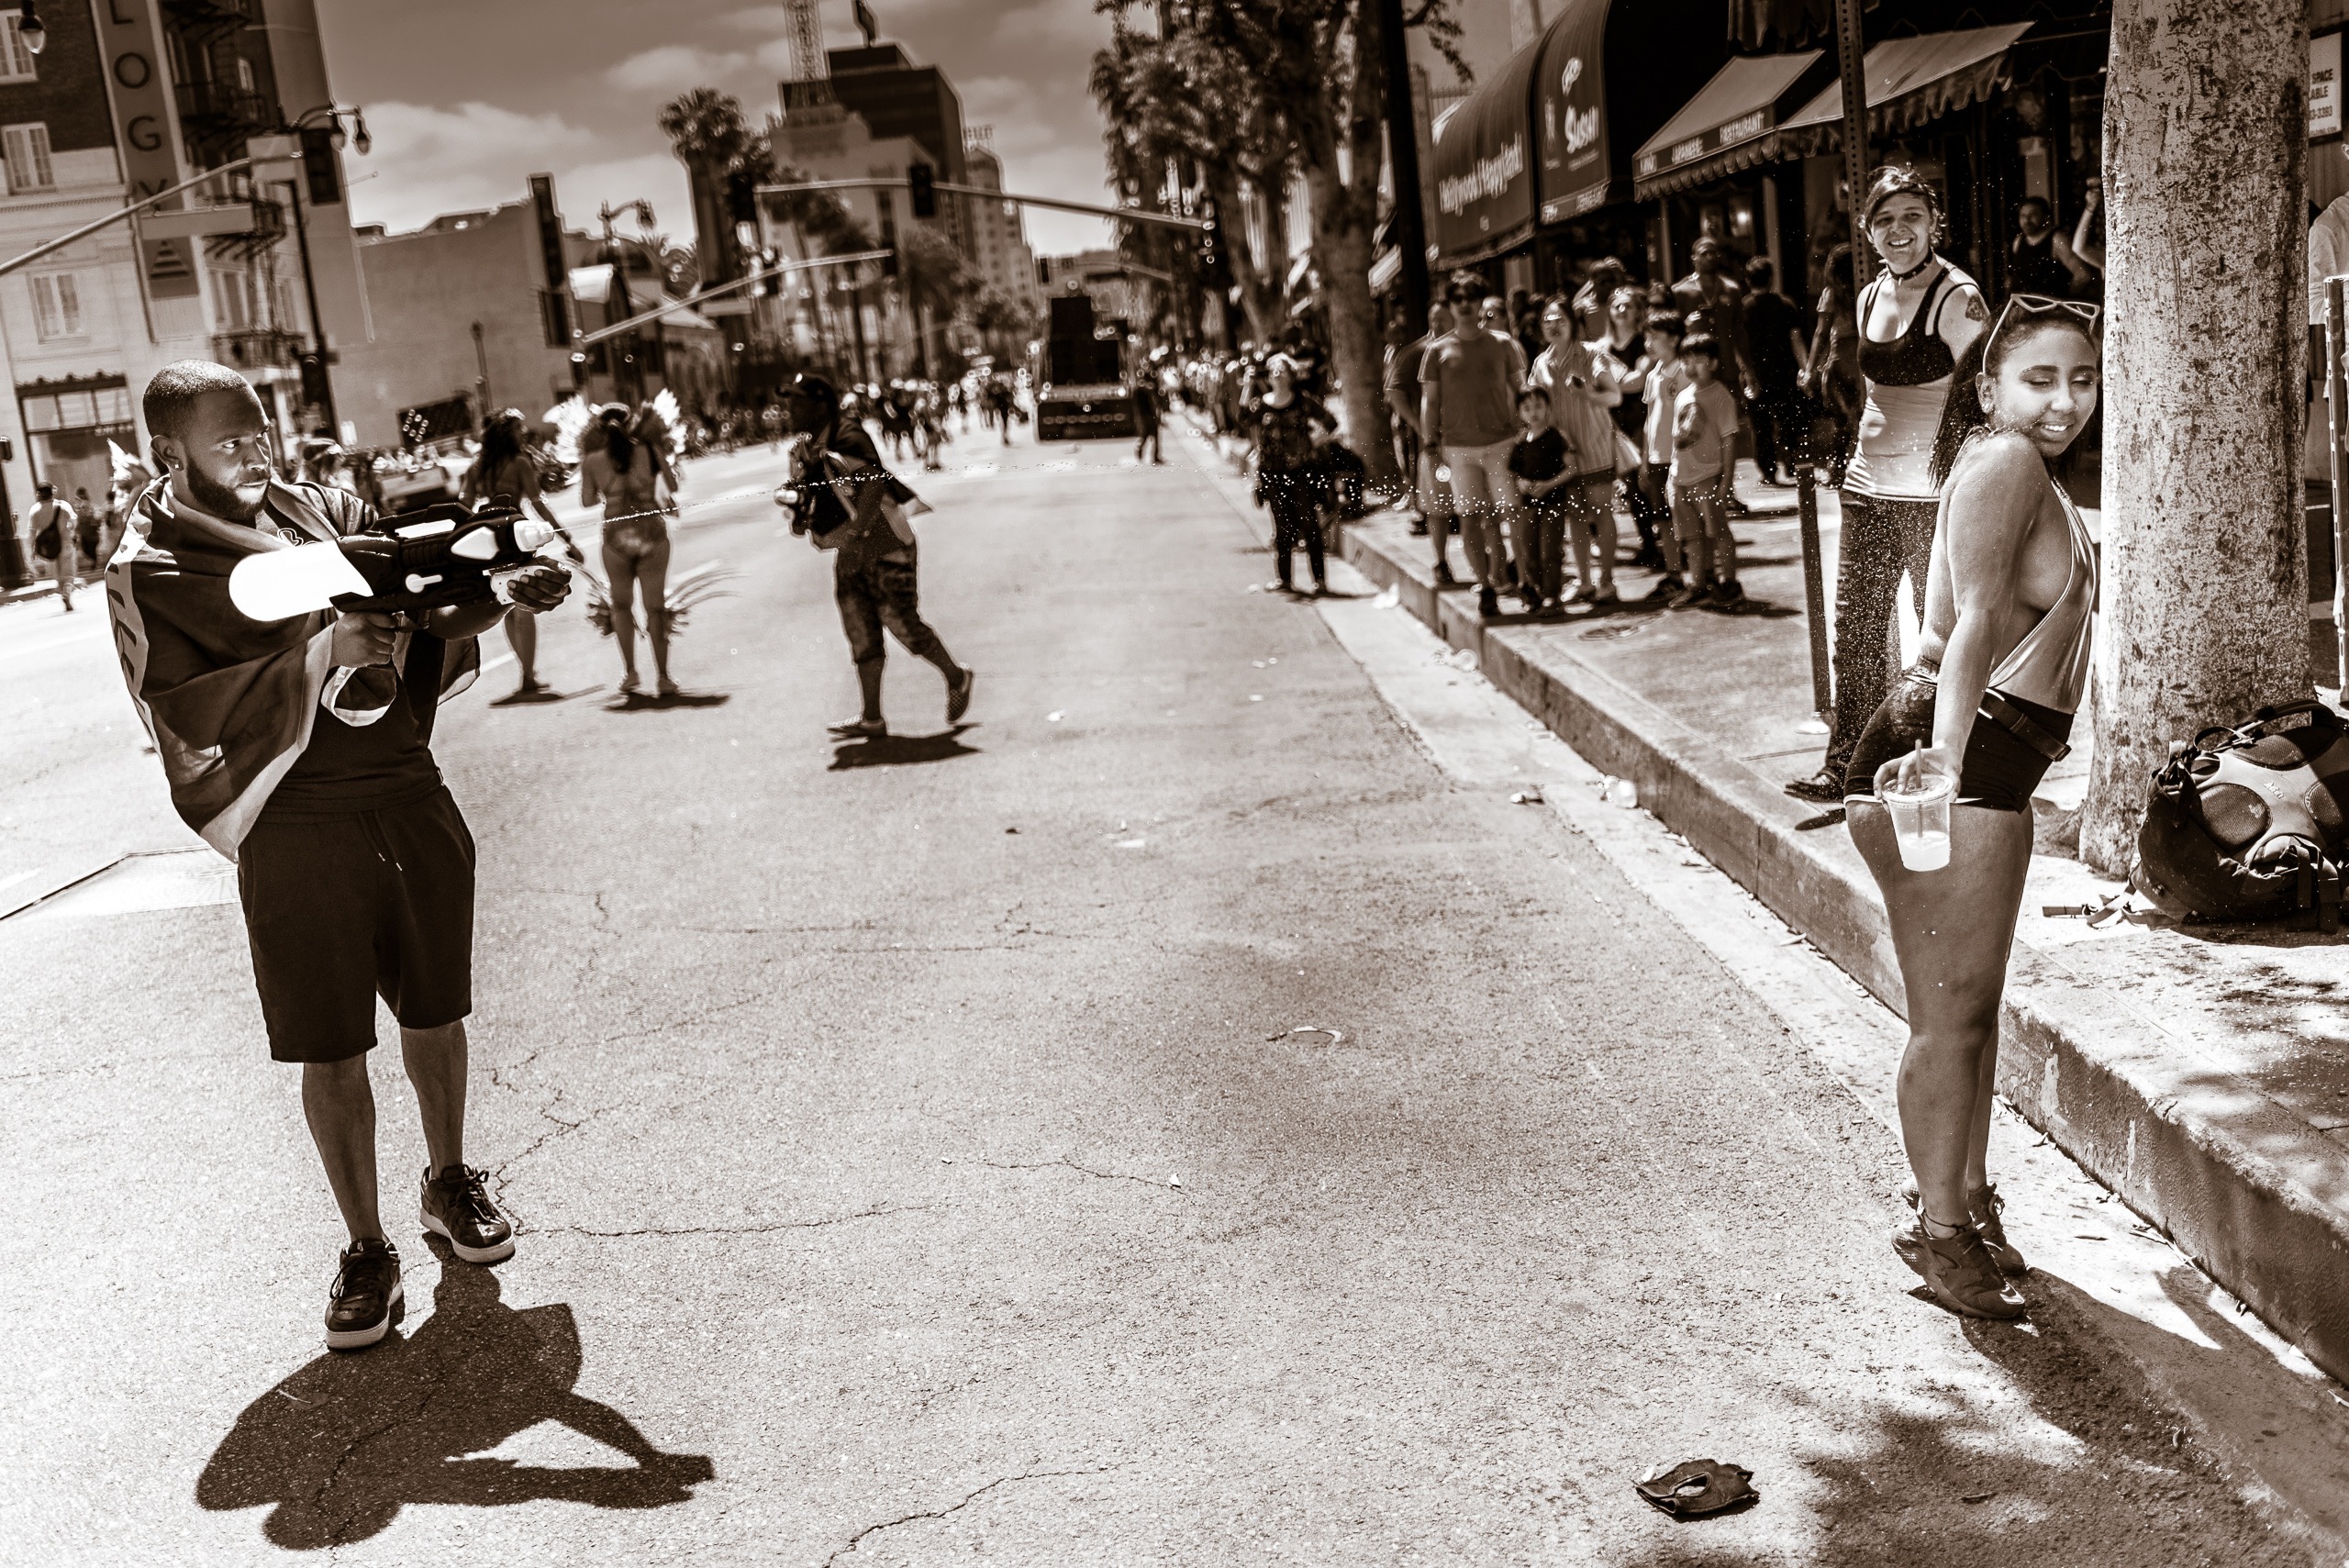 a guy stands in the middle of Hollywood Blvd and shoots a super soaker water stream at a dancer from the Hollywood Carnival Parade standing near the curb. She stands on her toes with her back to the water jet. Her eyes are closed and she seems to be enjoying the refreshing blast.